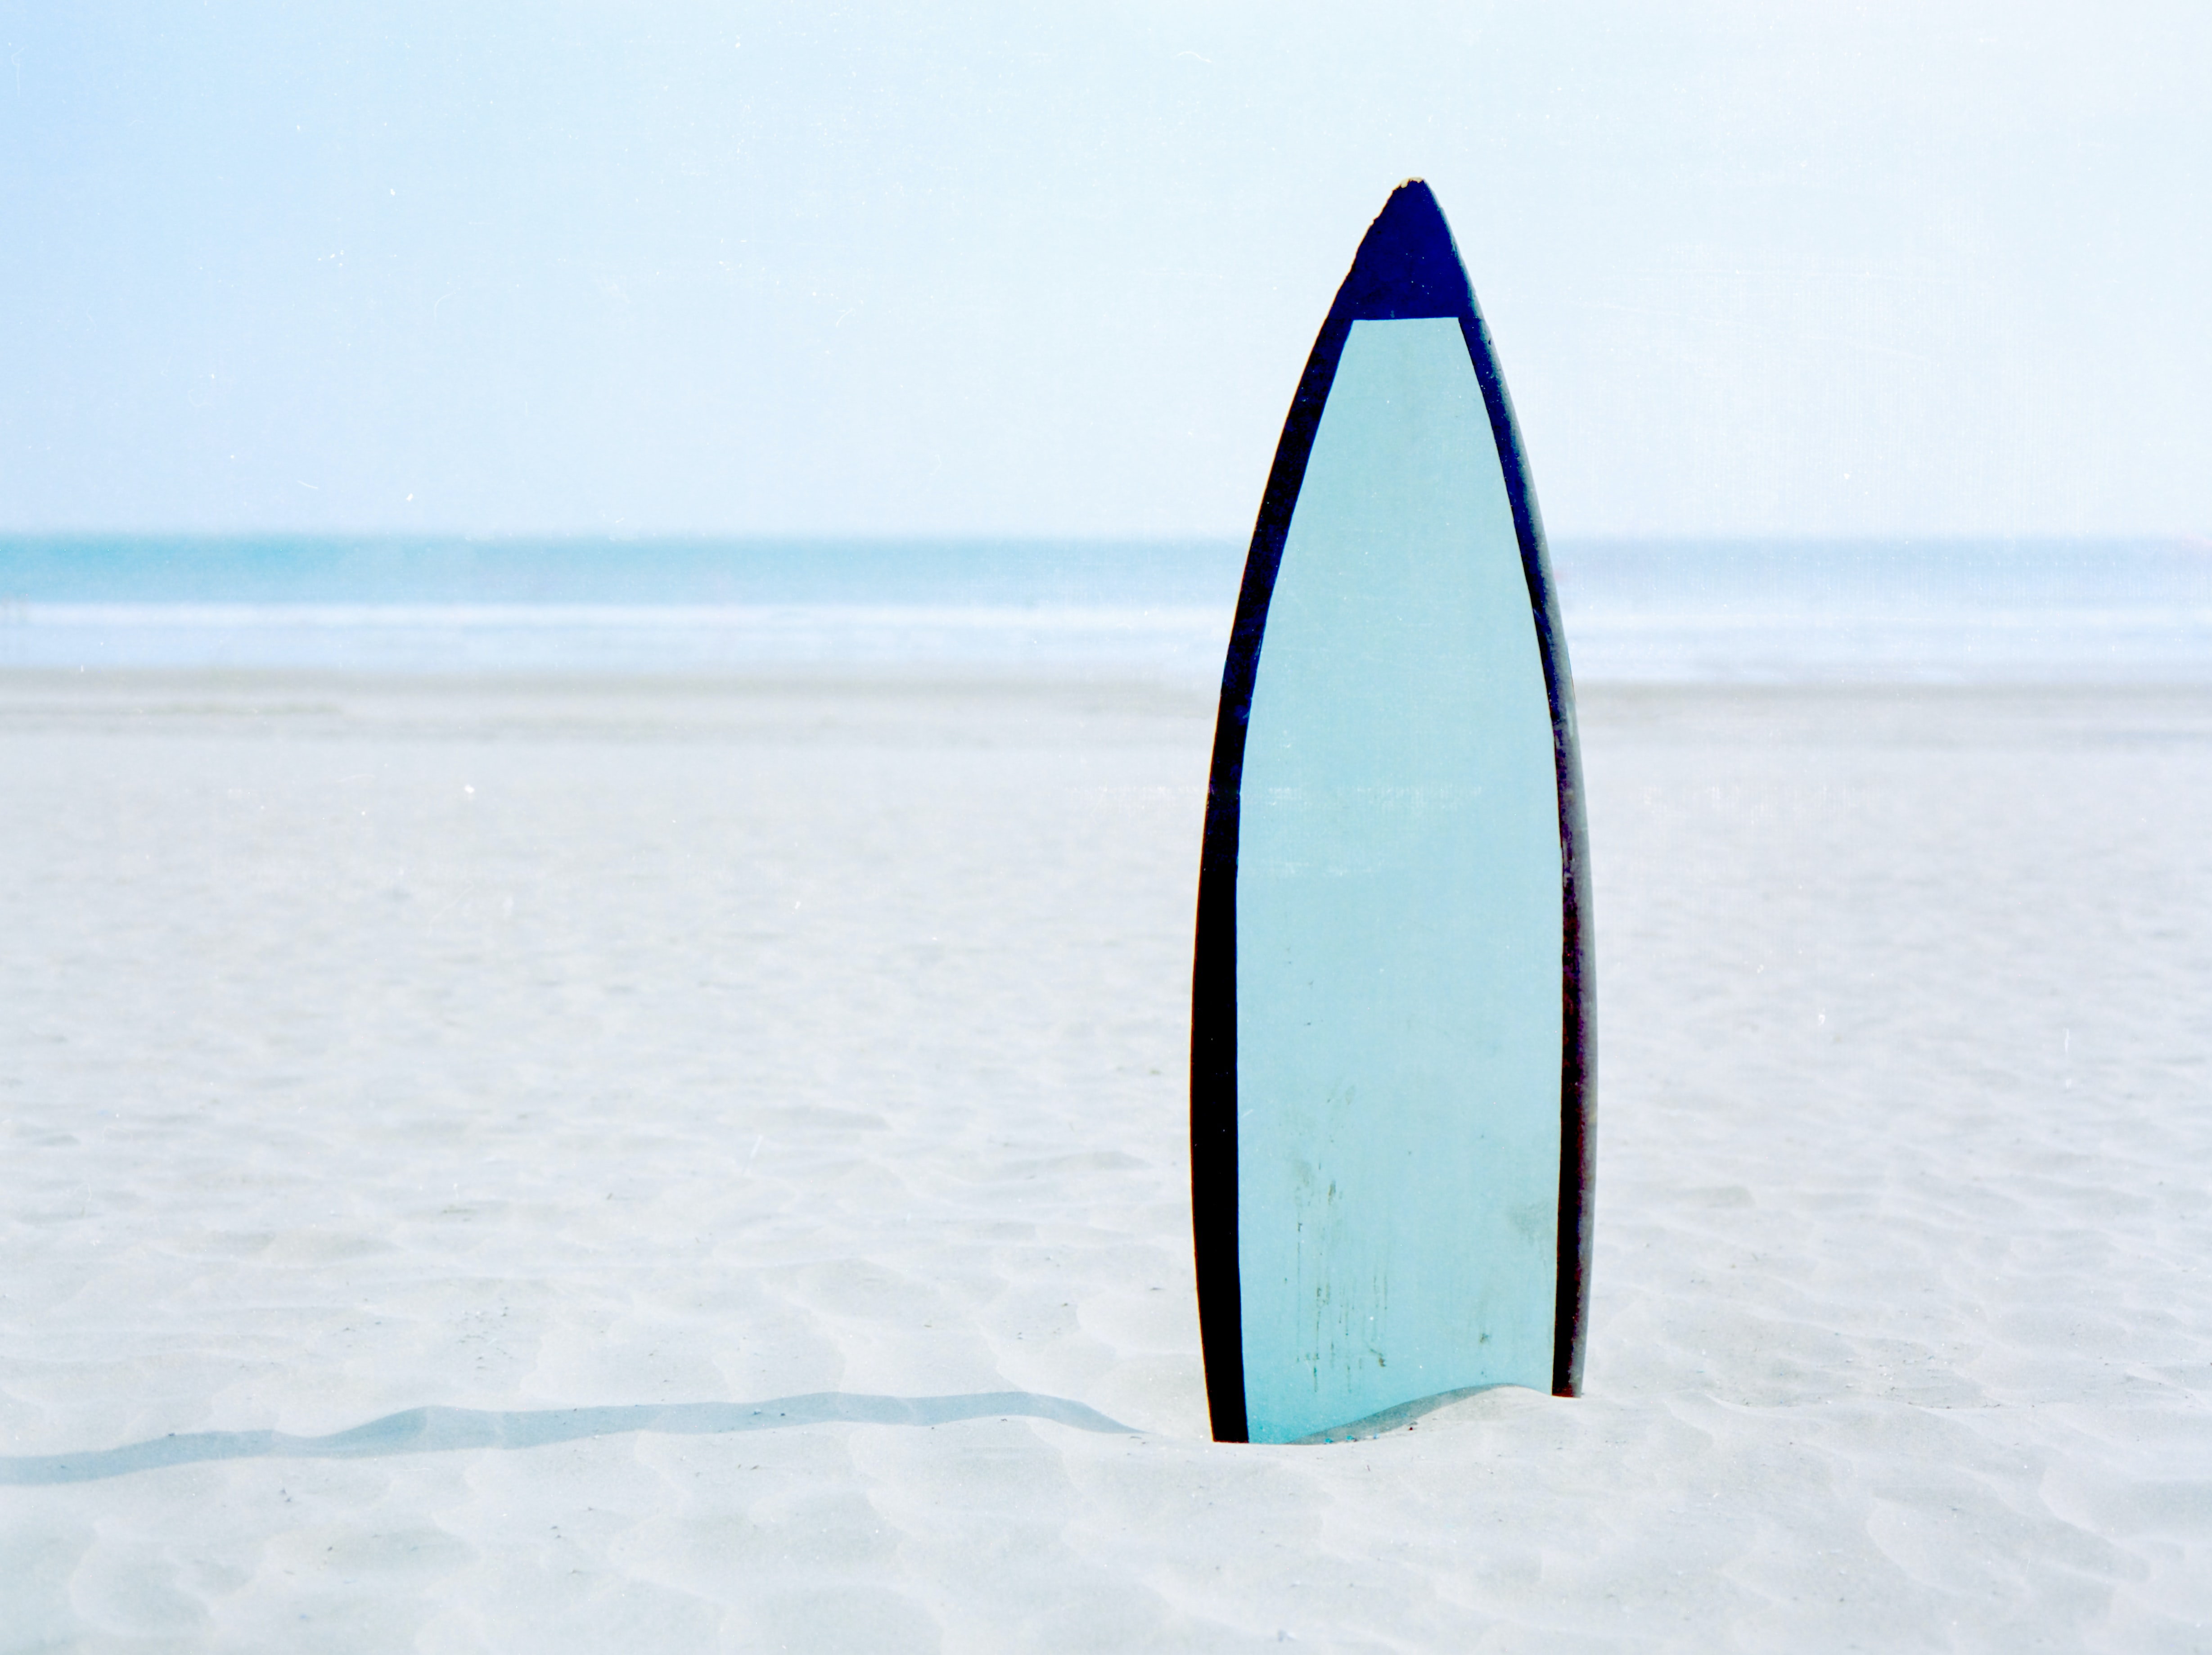 surfboard on seashore